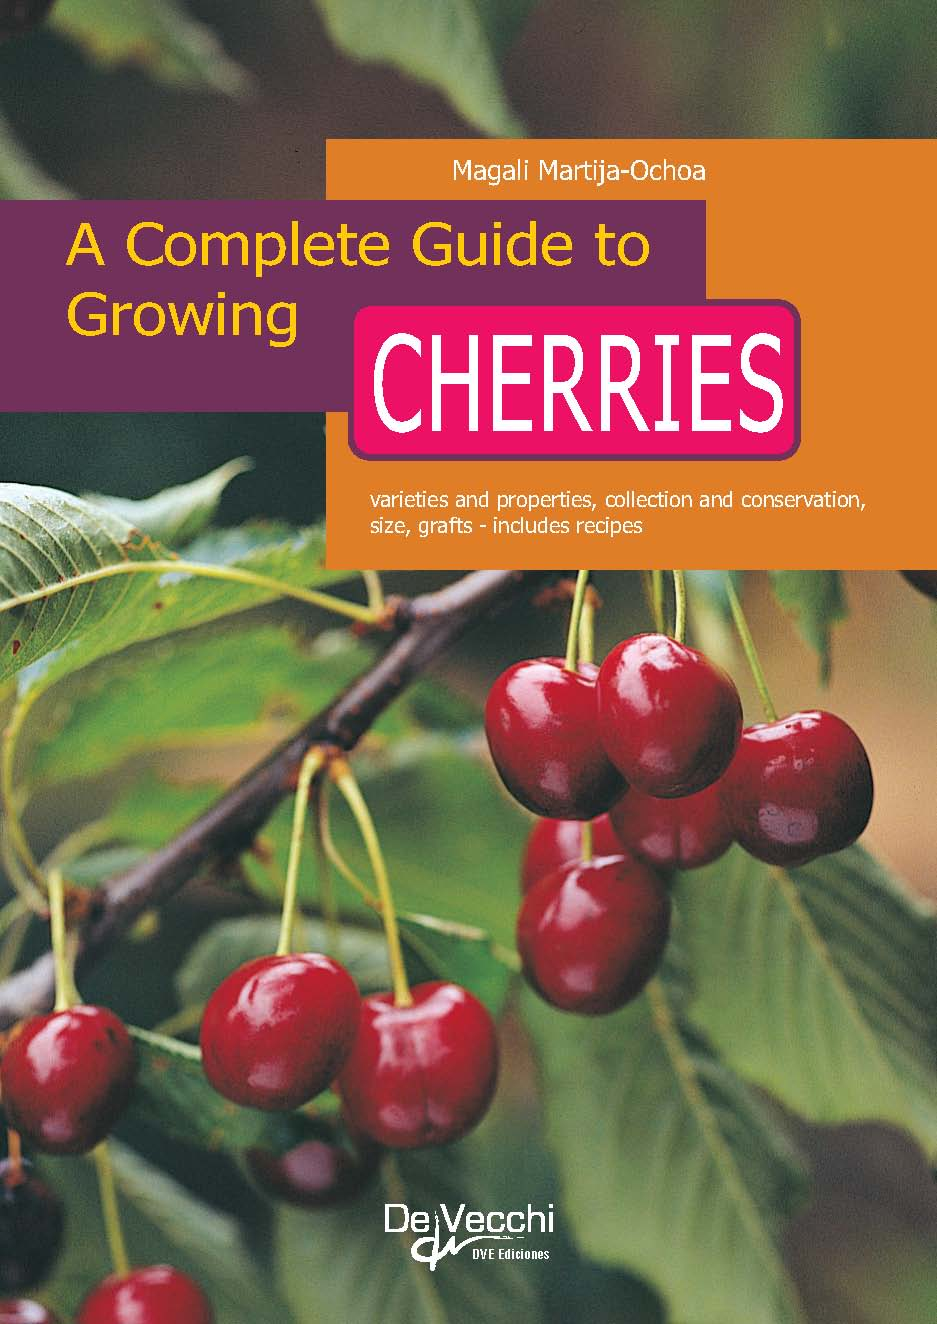 A COMPLETE GUIDE TO GROWING CHERRIES